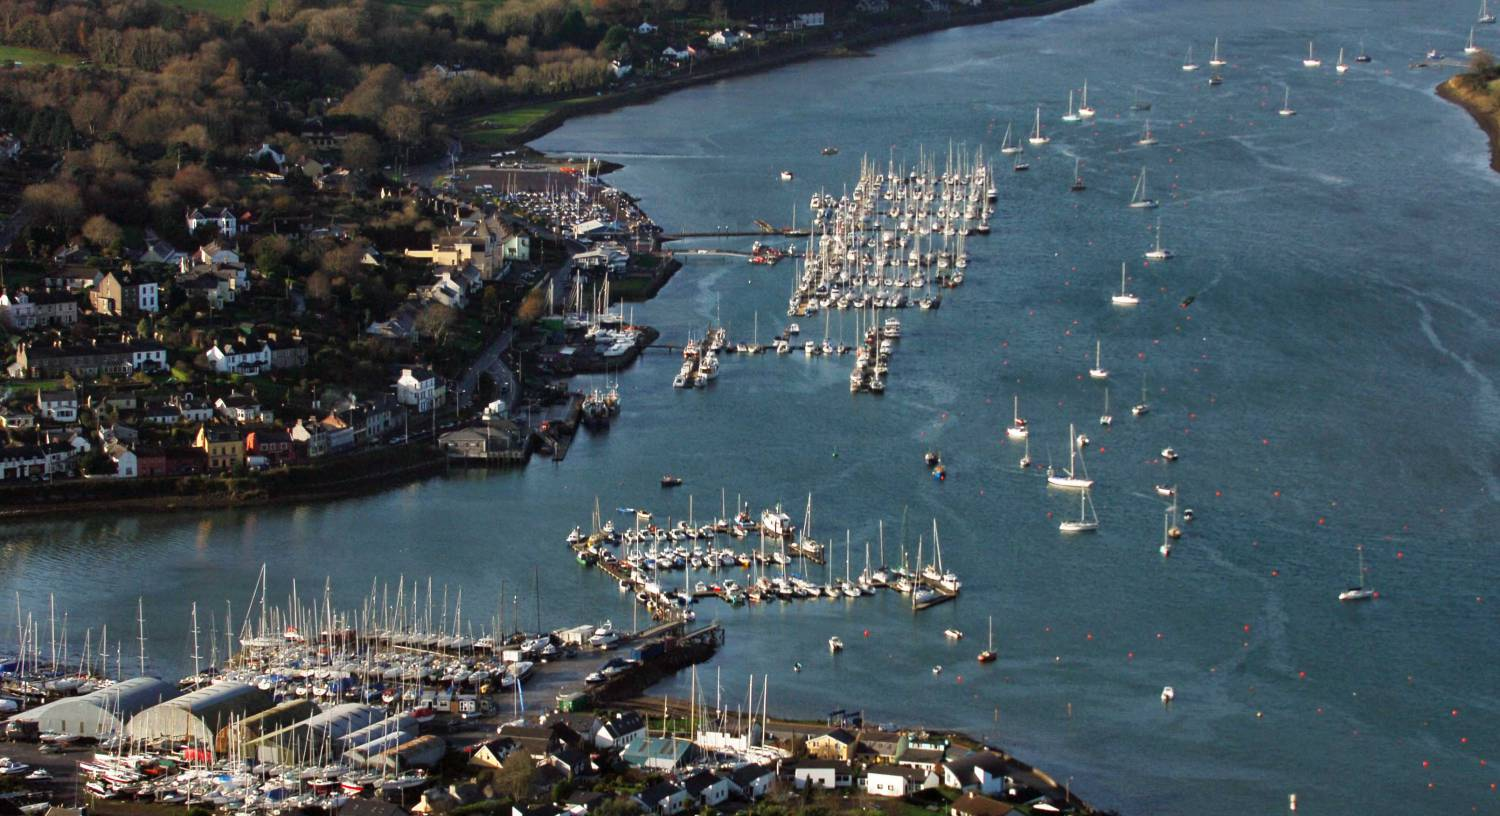 Crosshaven's RCYC 1720 sailing celebration left up the creek, but Brightwater still has wind in its sales